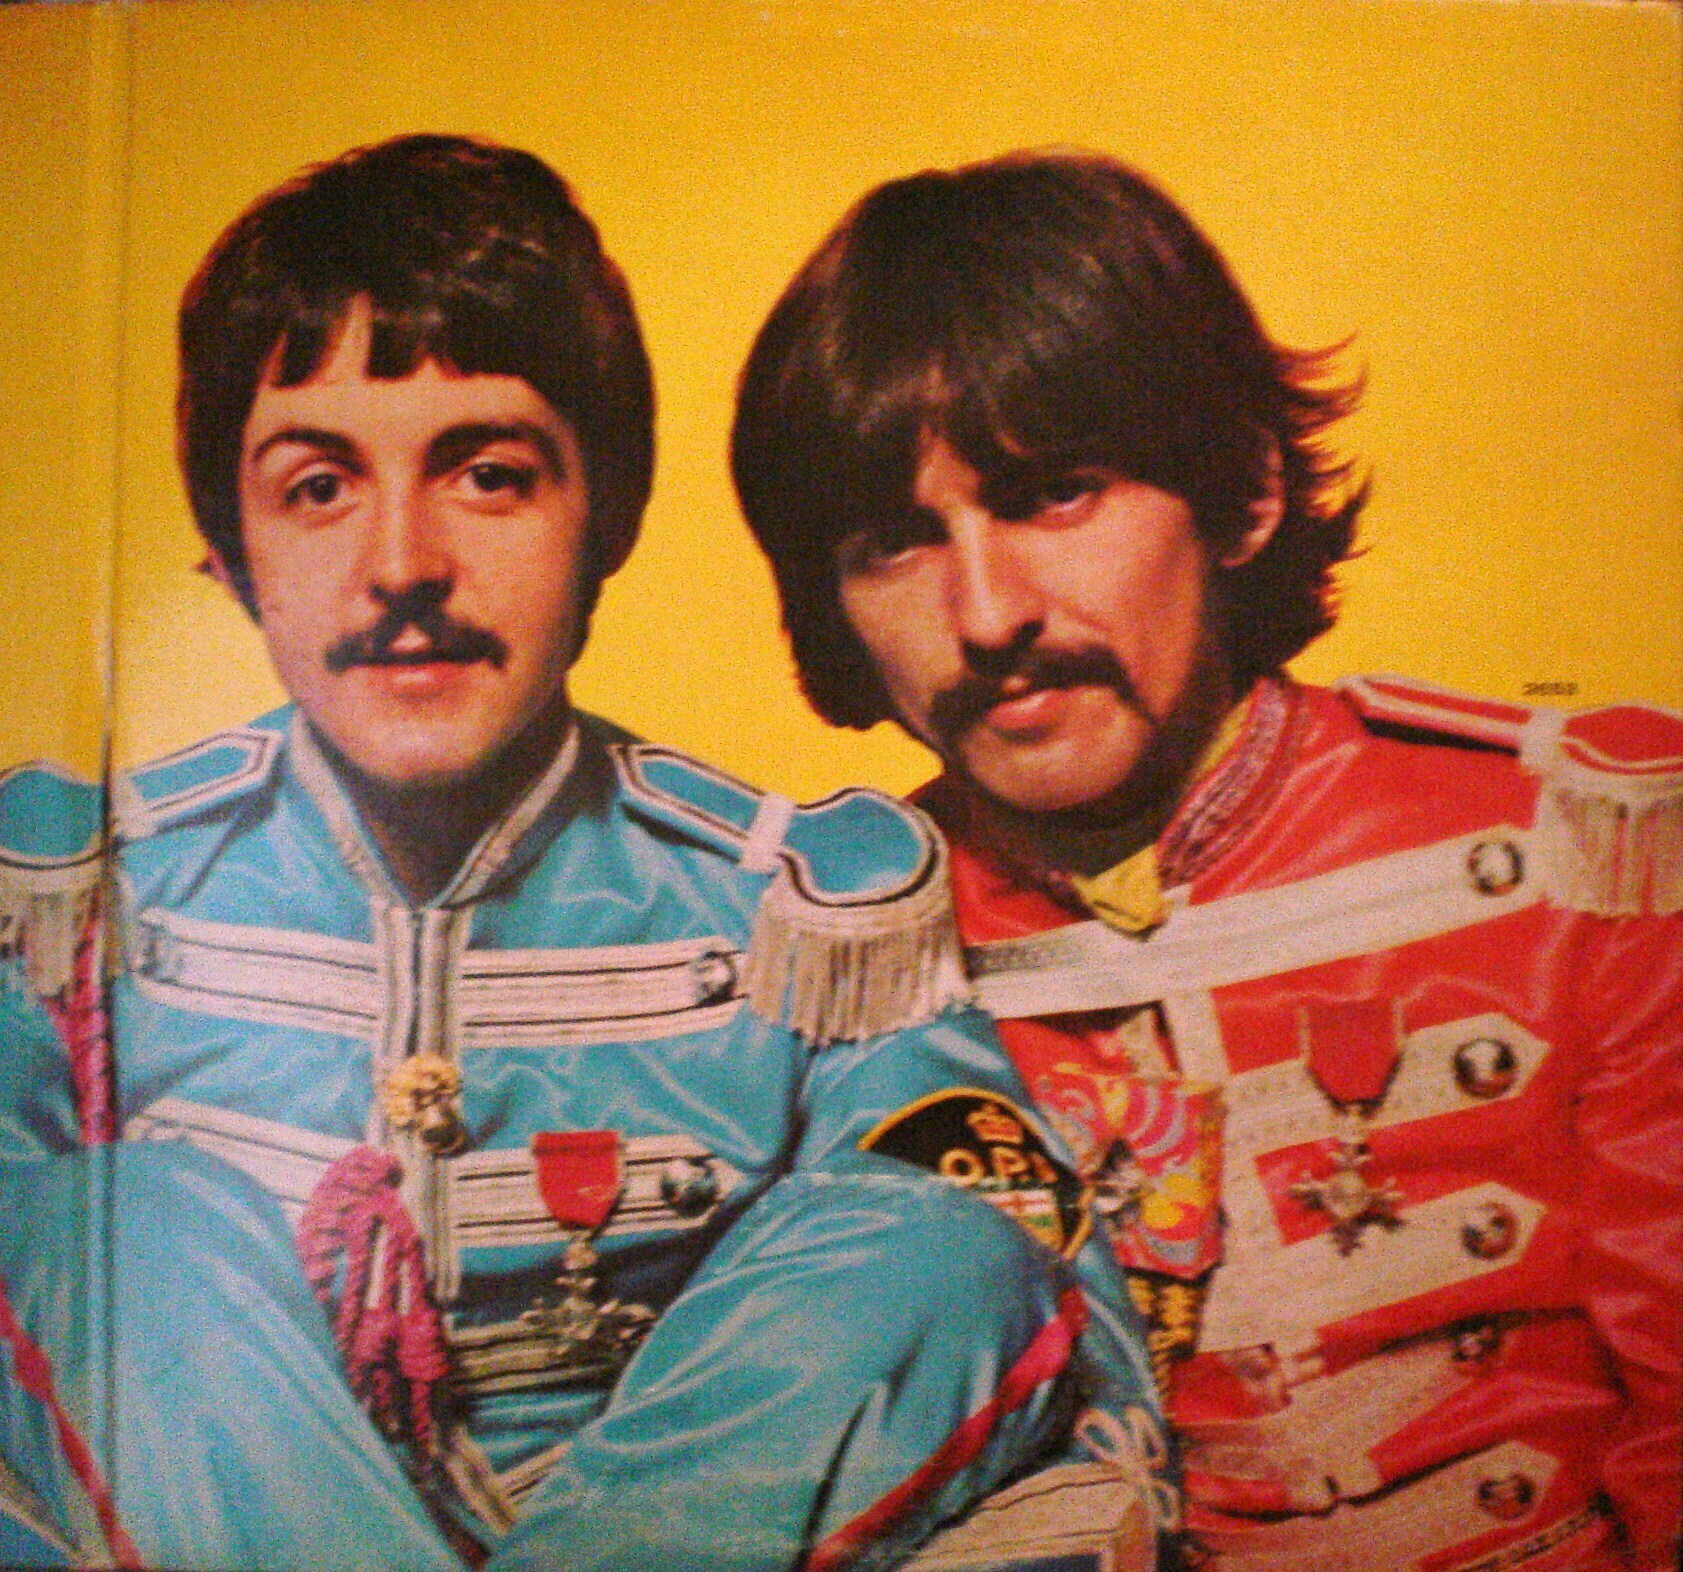 Les Beatles Images Sgt Peppers Lonely Hearts Club Band Hd Fond D